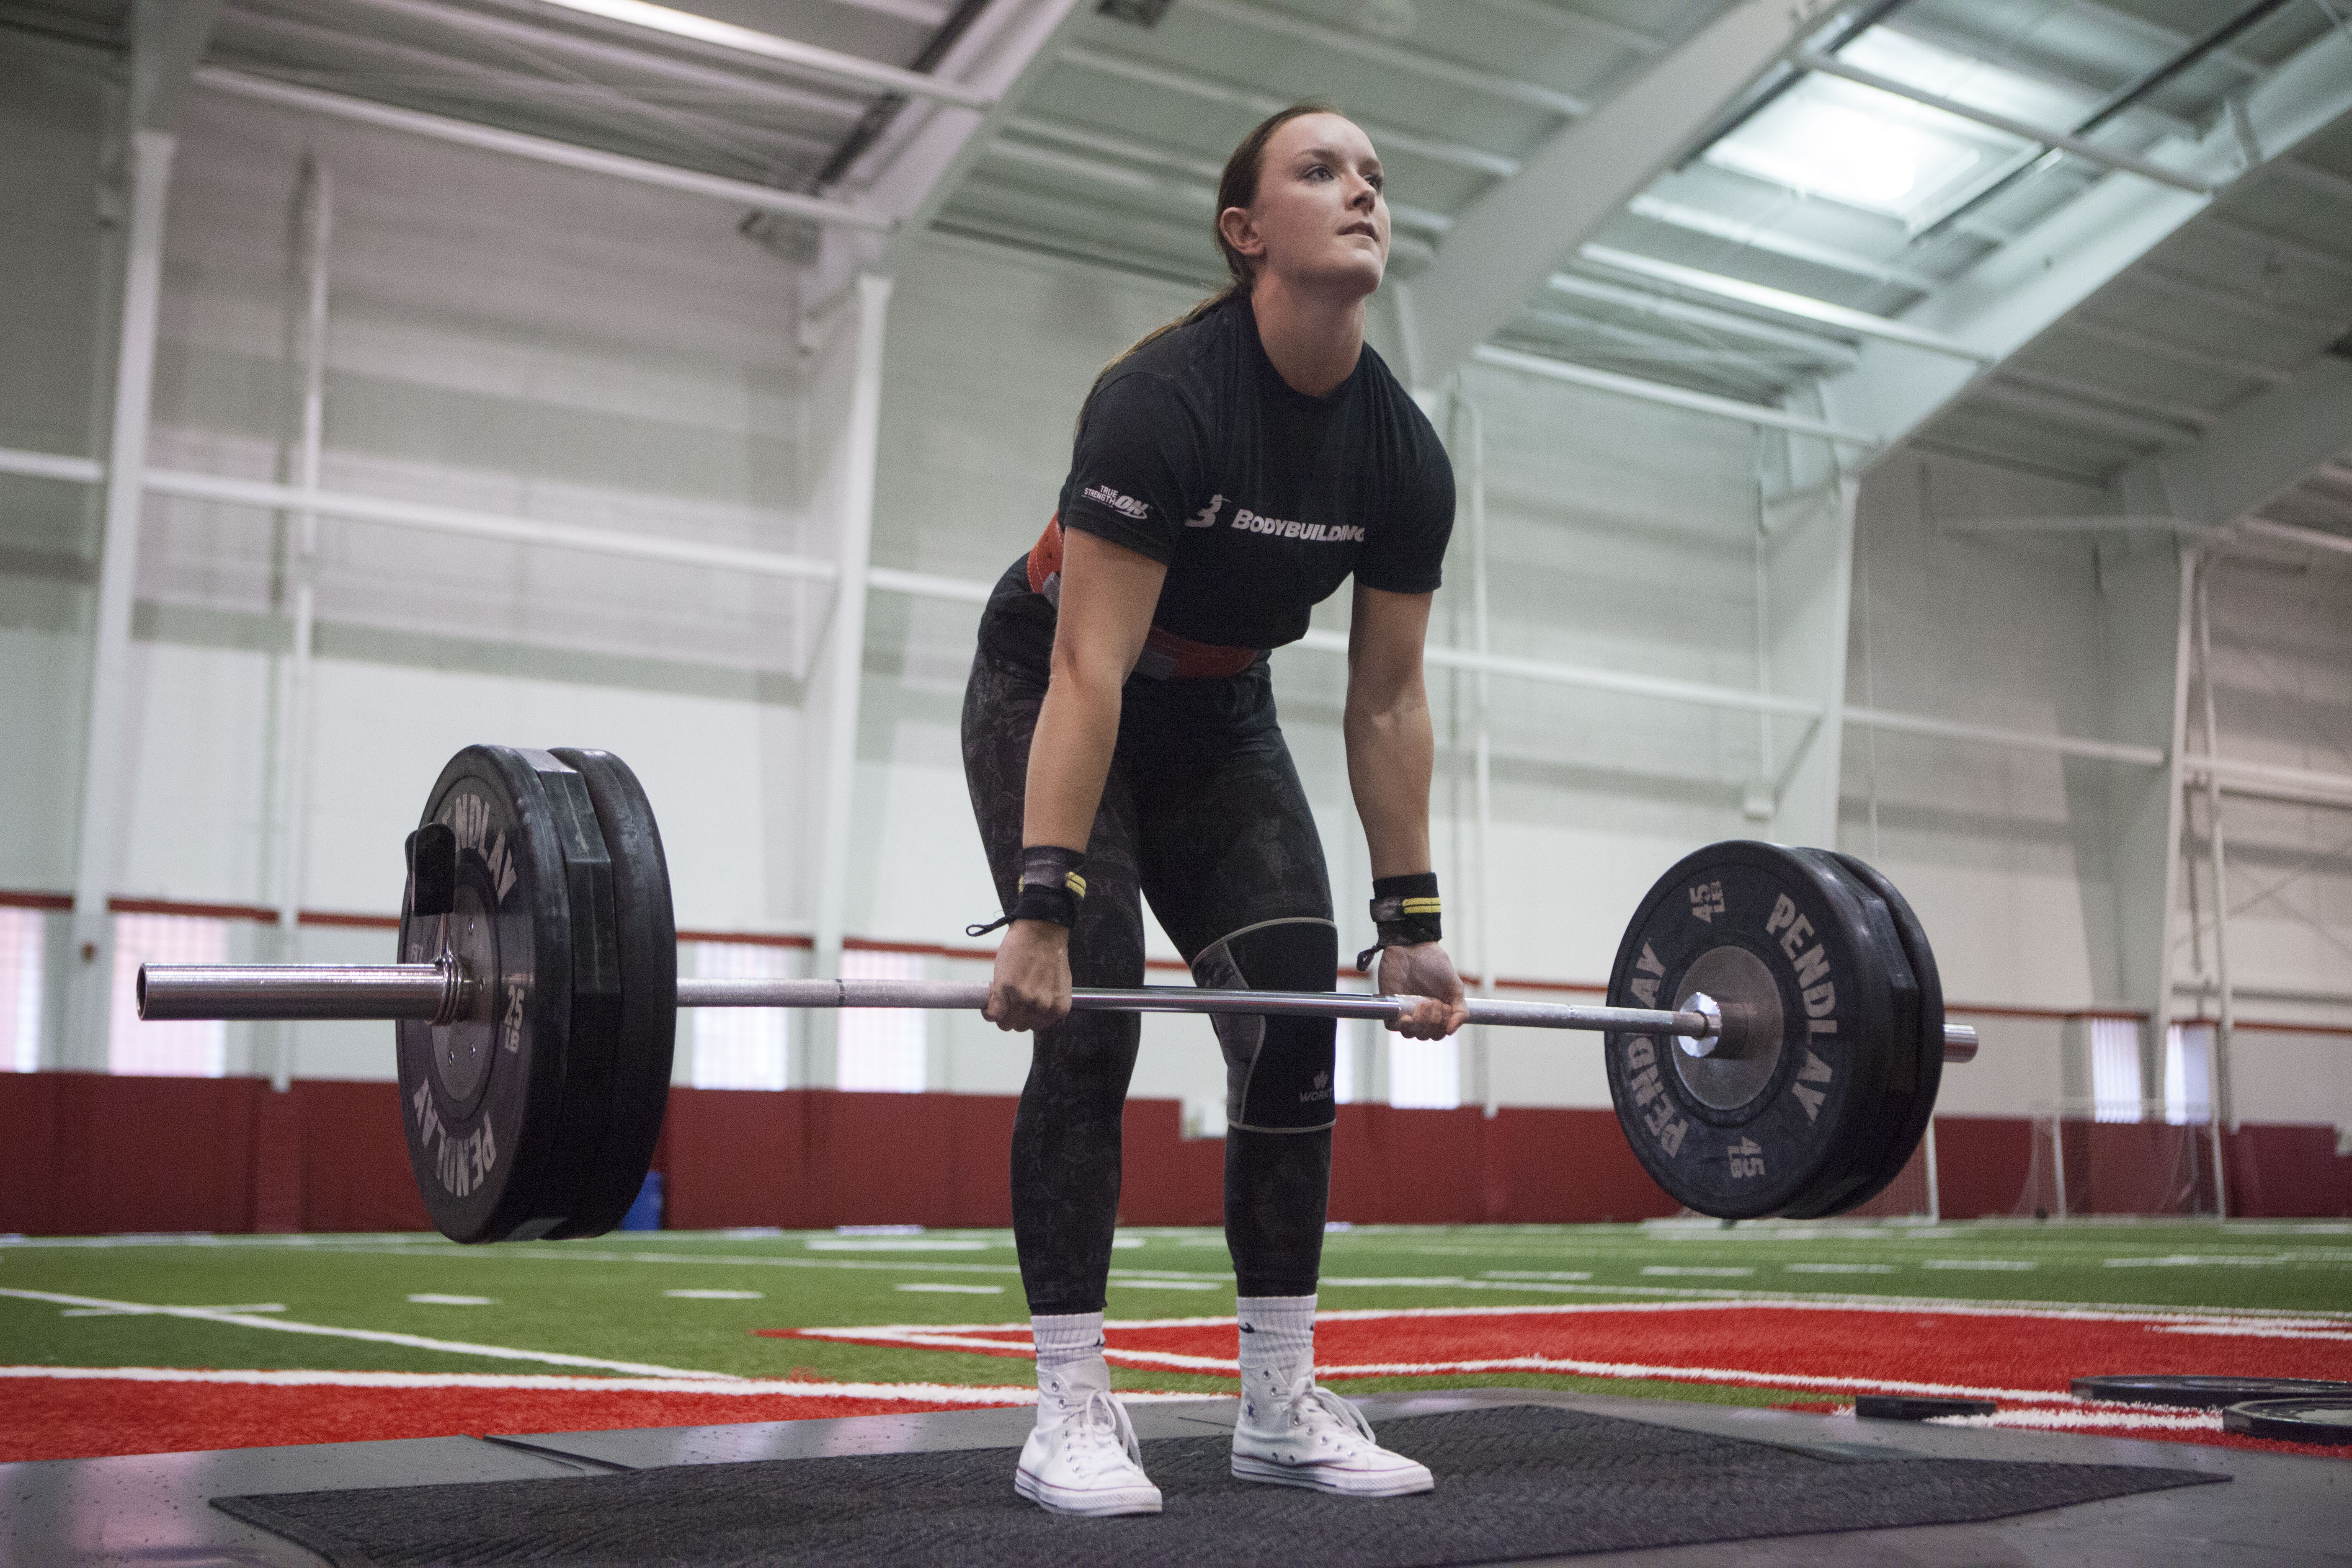 The seventh Strong Husker competition is held Oct. 28. Photo courtesy of Bill Wendl.